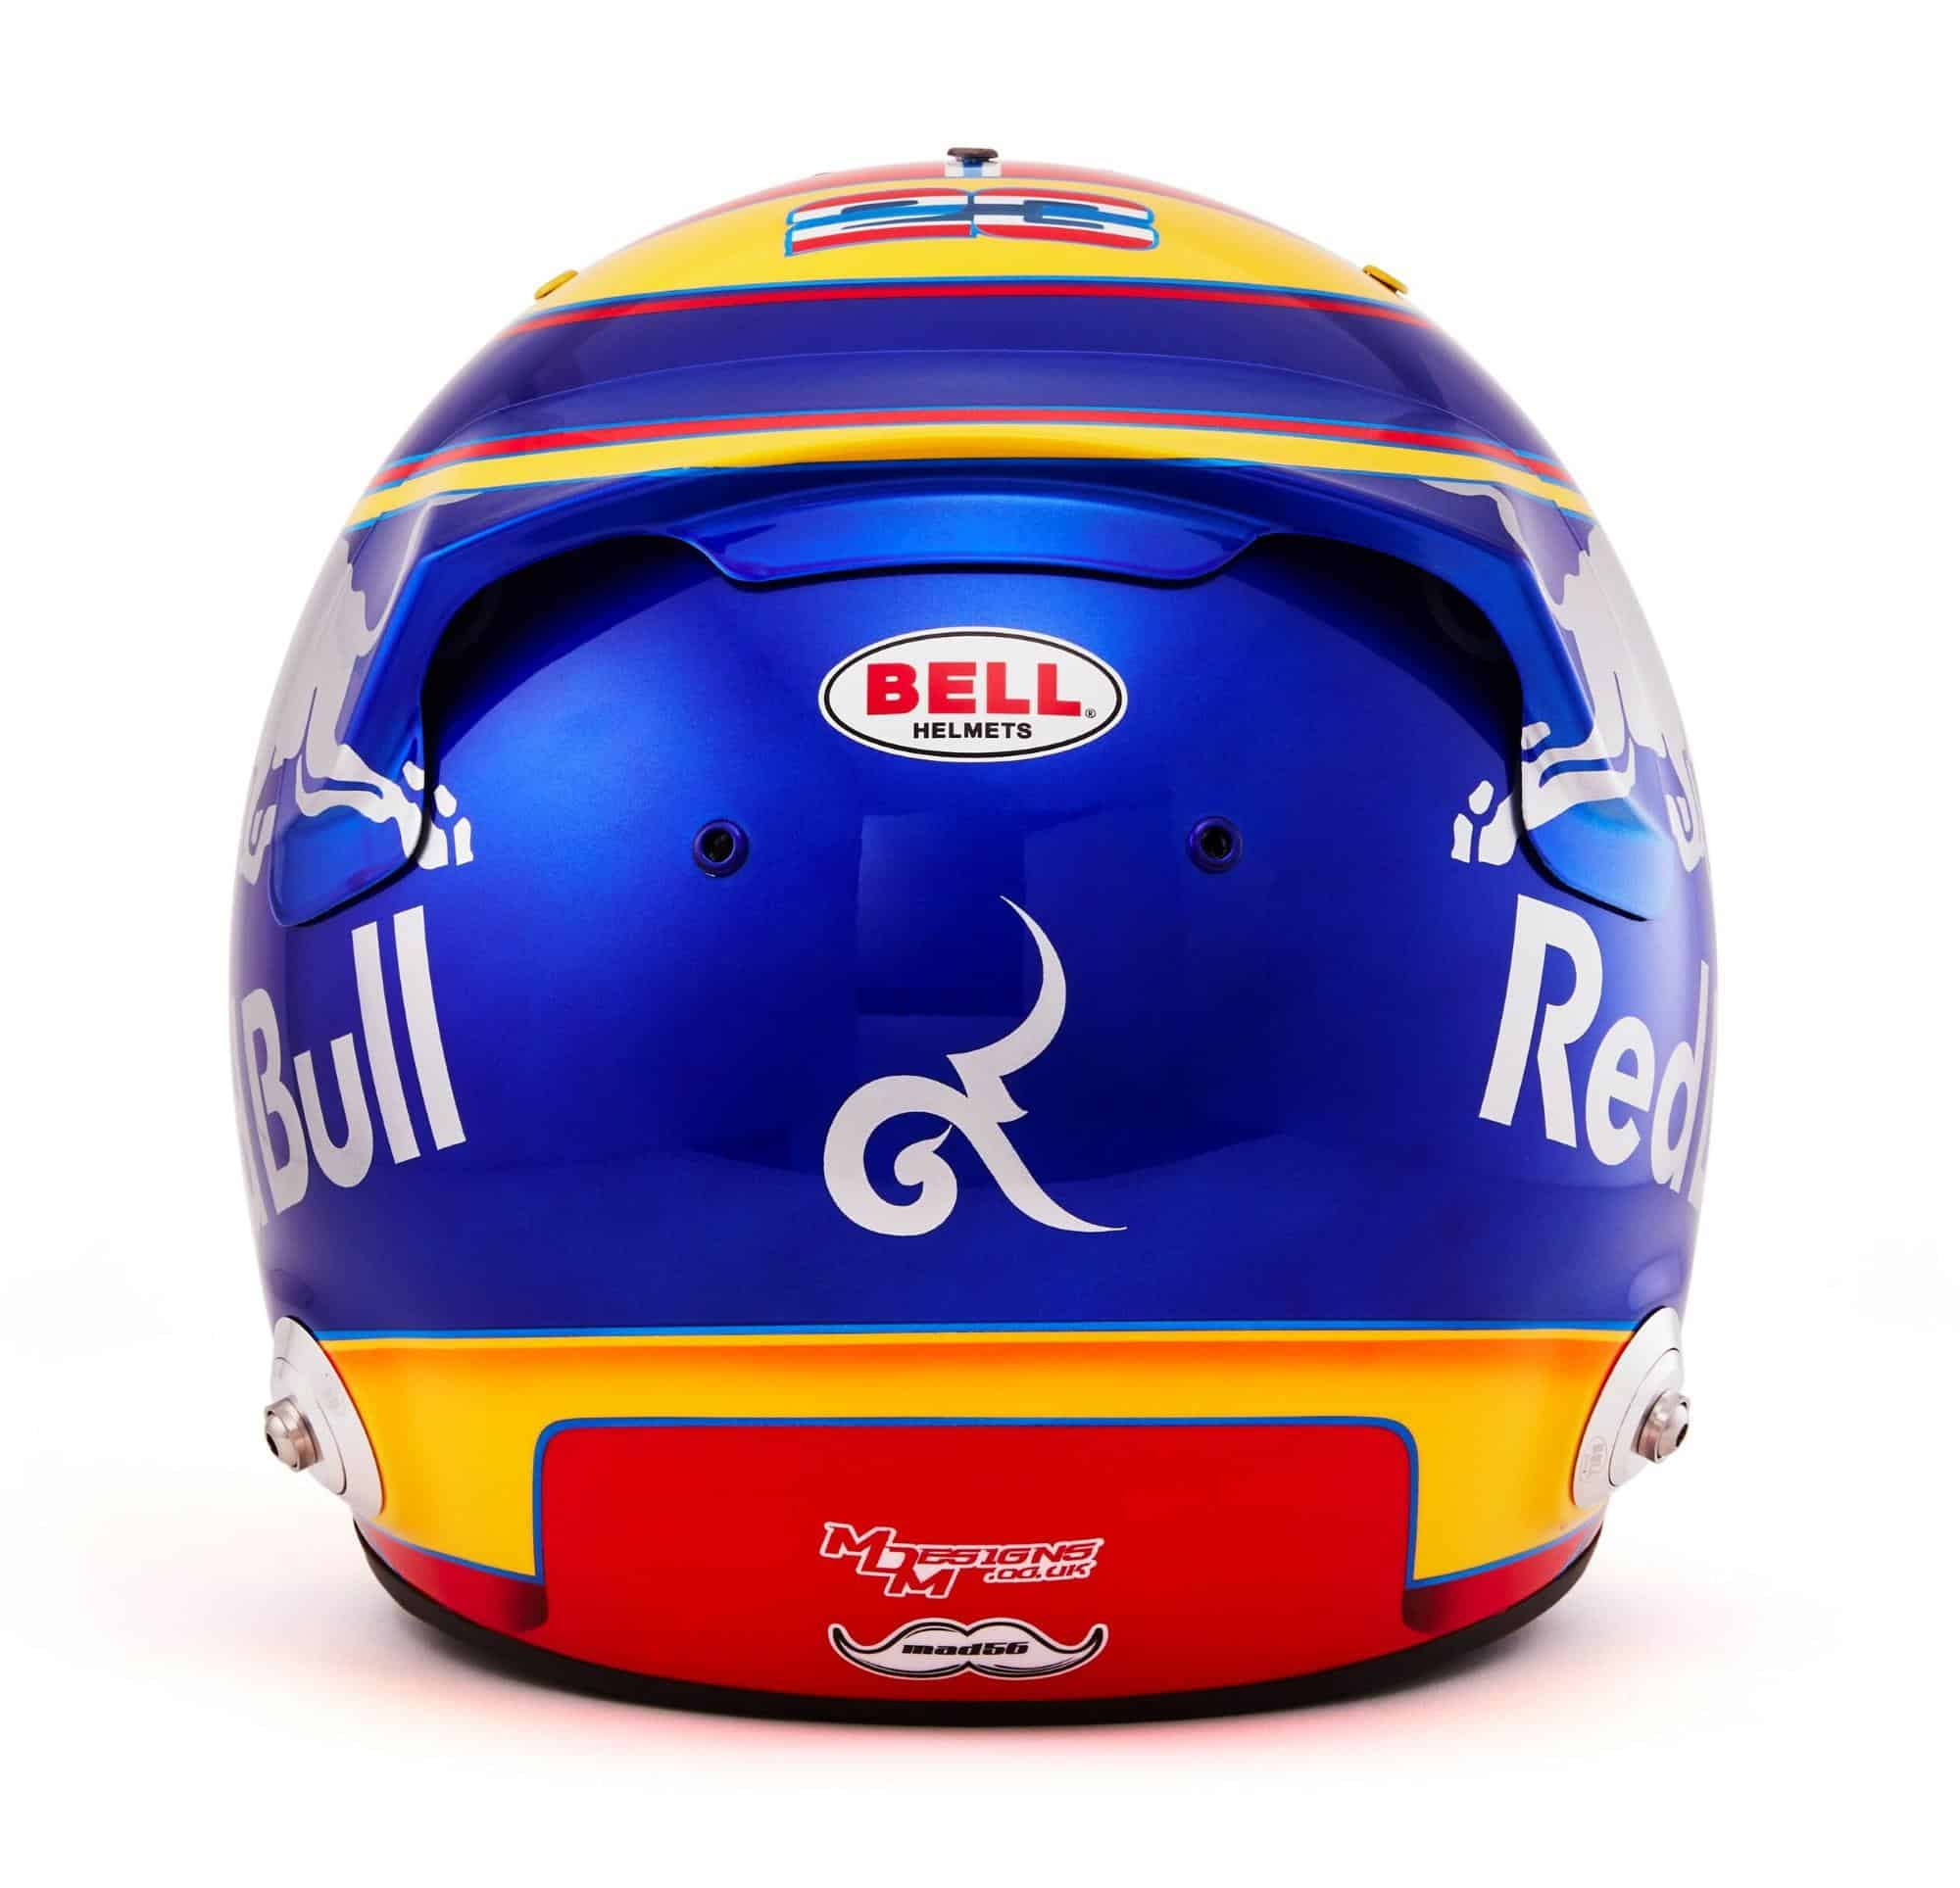 2019 F1 Alexander Albon helmet Toro Rosso Honda rear Photo Red Bull Edited by MAXF1net